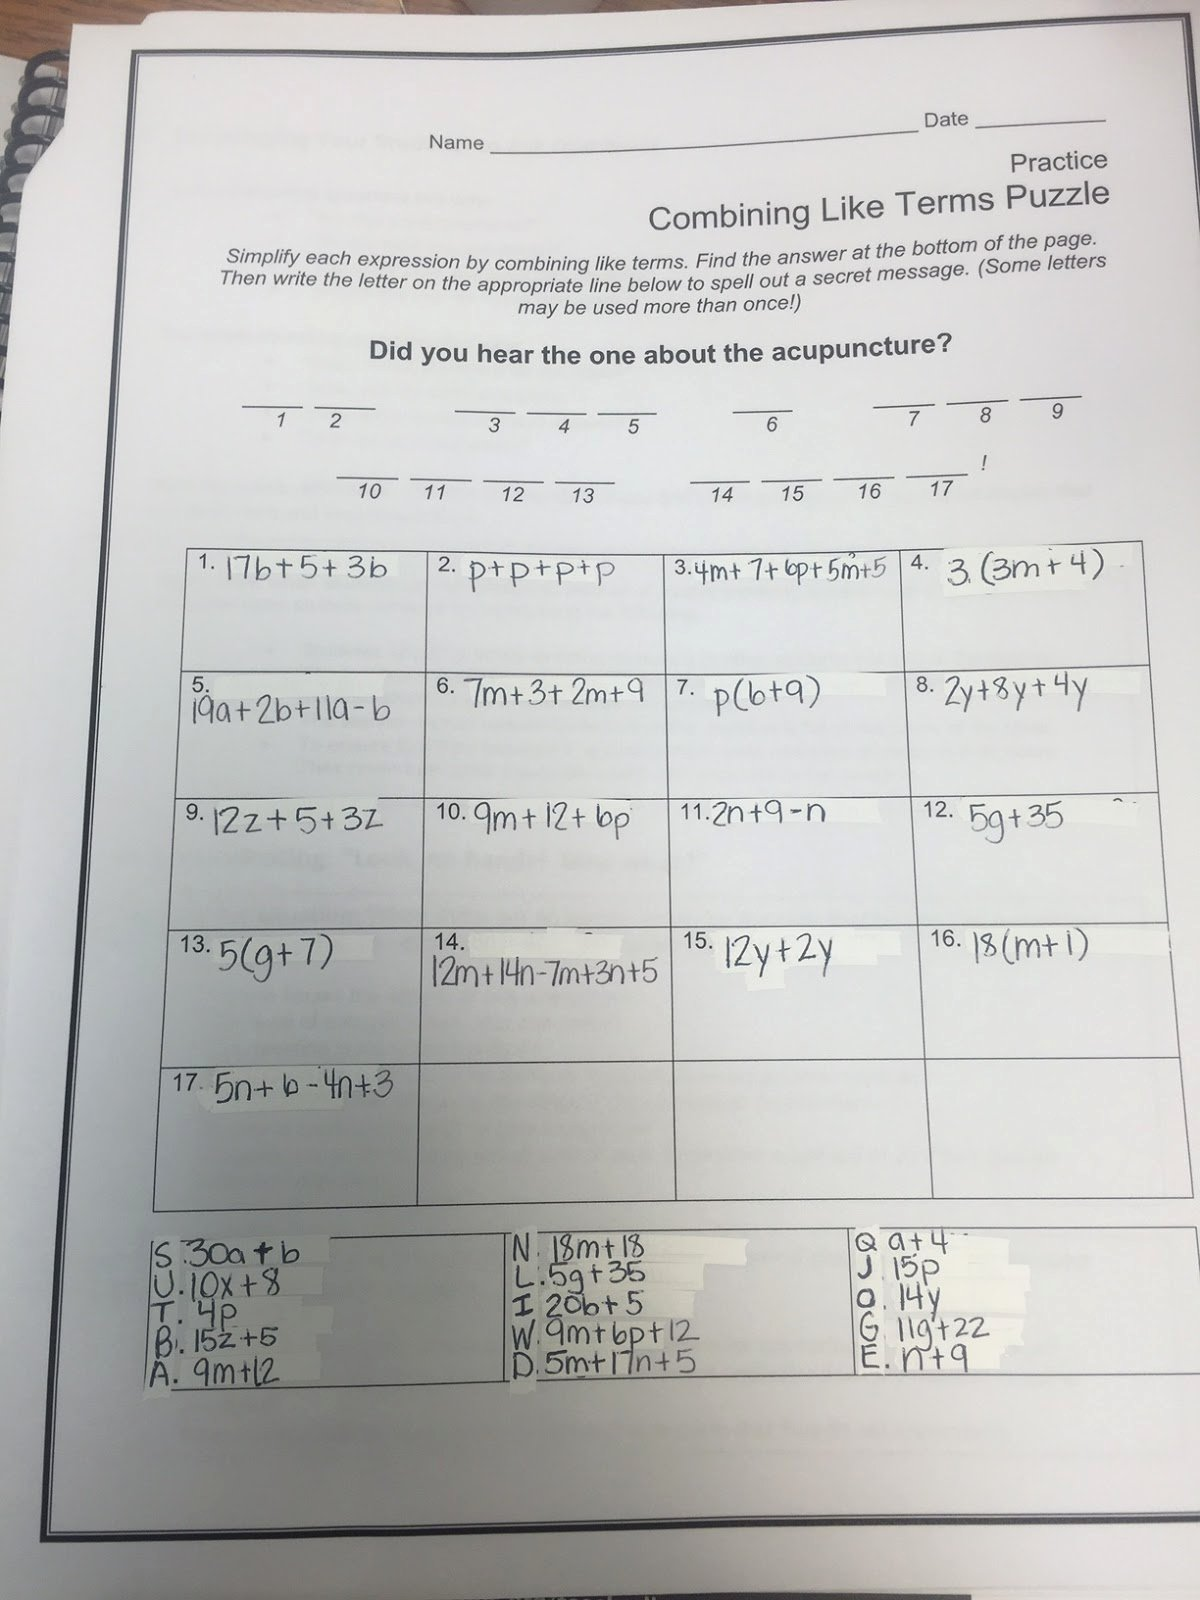 50 Combining Like Terms Worksheet